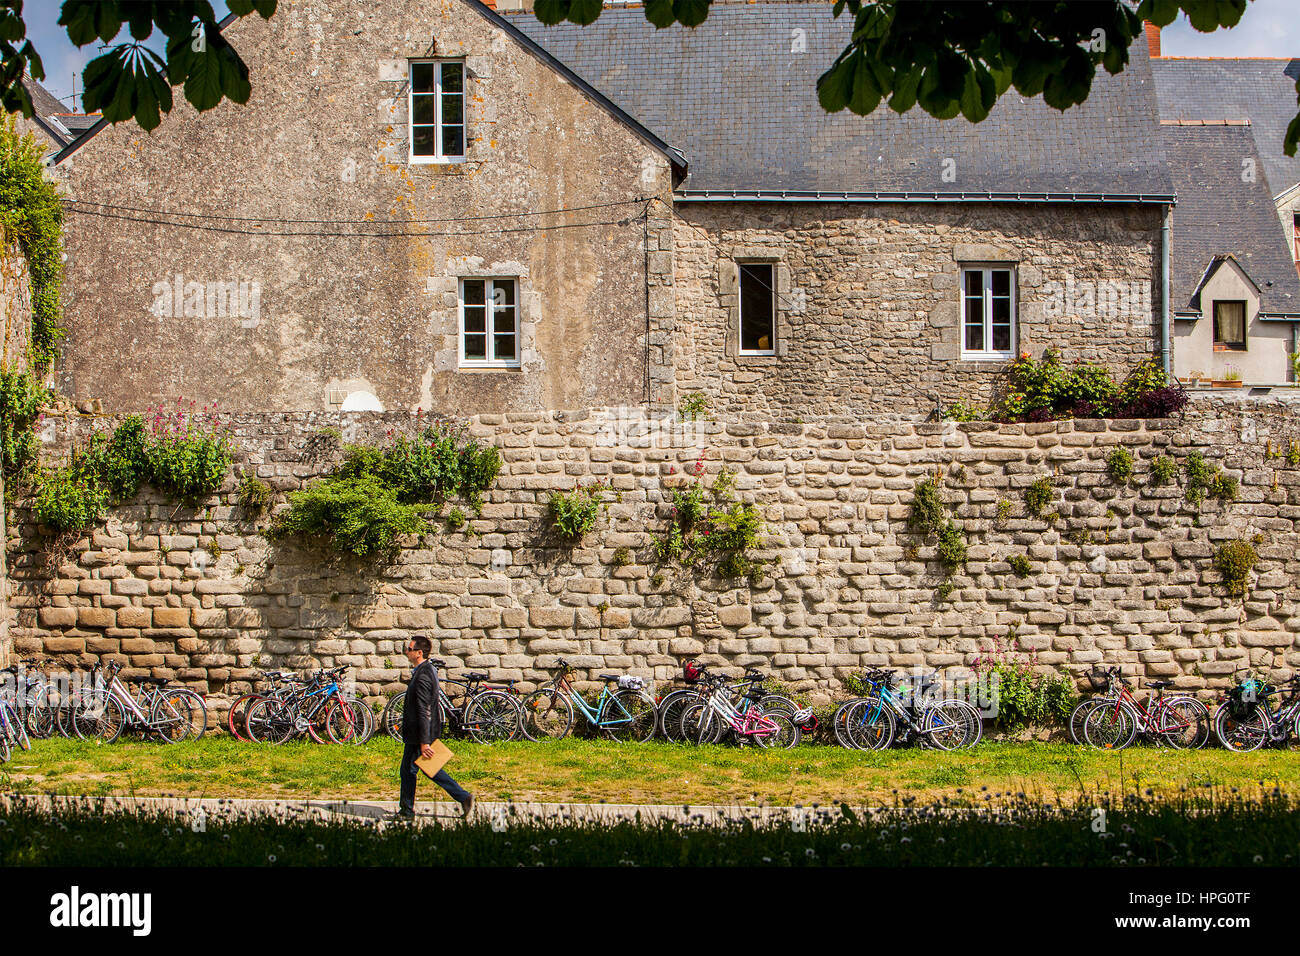 Ramparts and houses of medieval city, Guerande, Loire-Atlantique, France Stock Photo